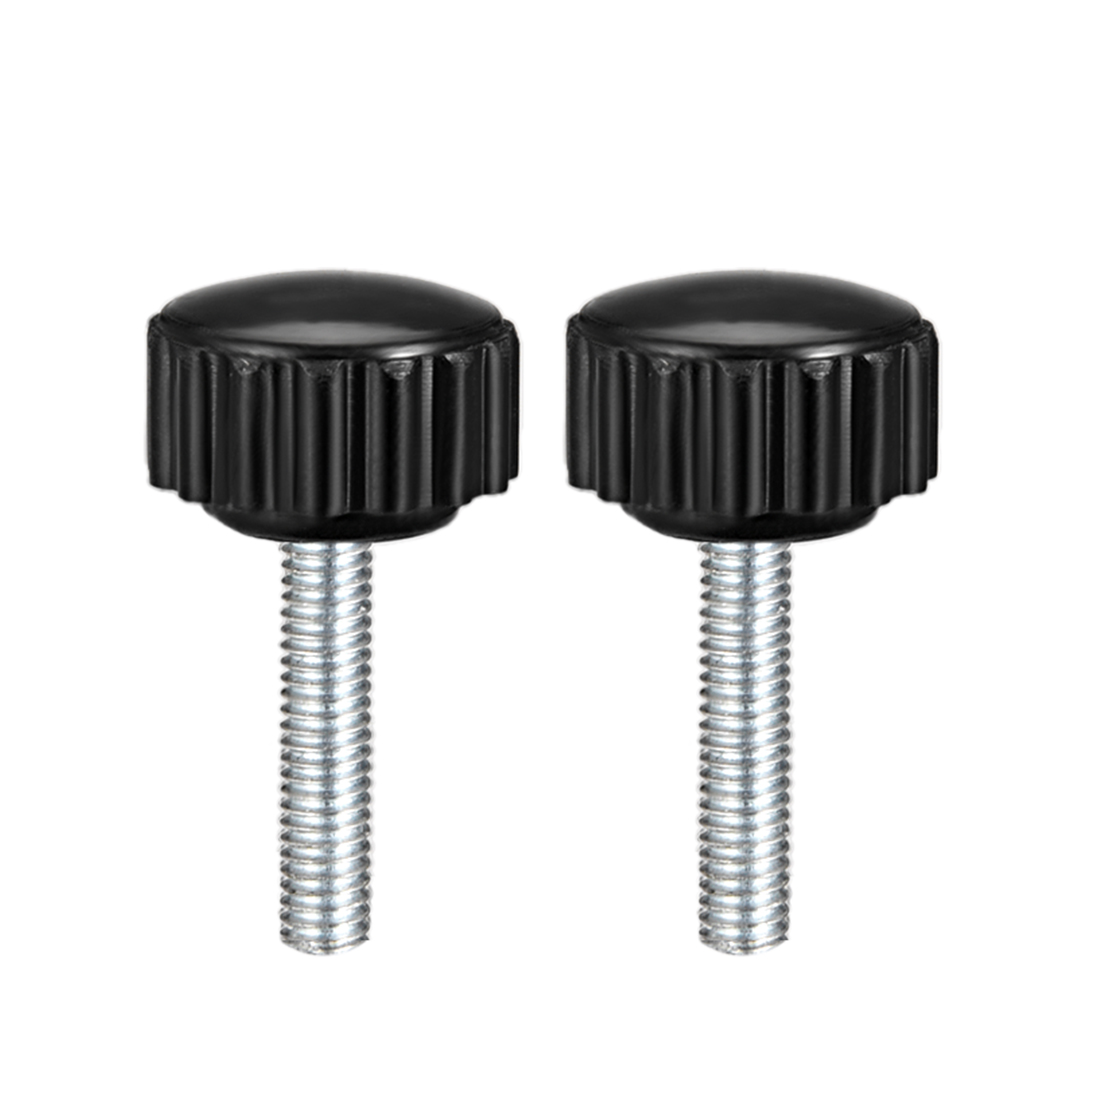 M4 x 20mm Male Thread Knurled Clamping Knobs Grip Thumb Screw on Type  5 Pcs